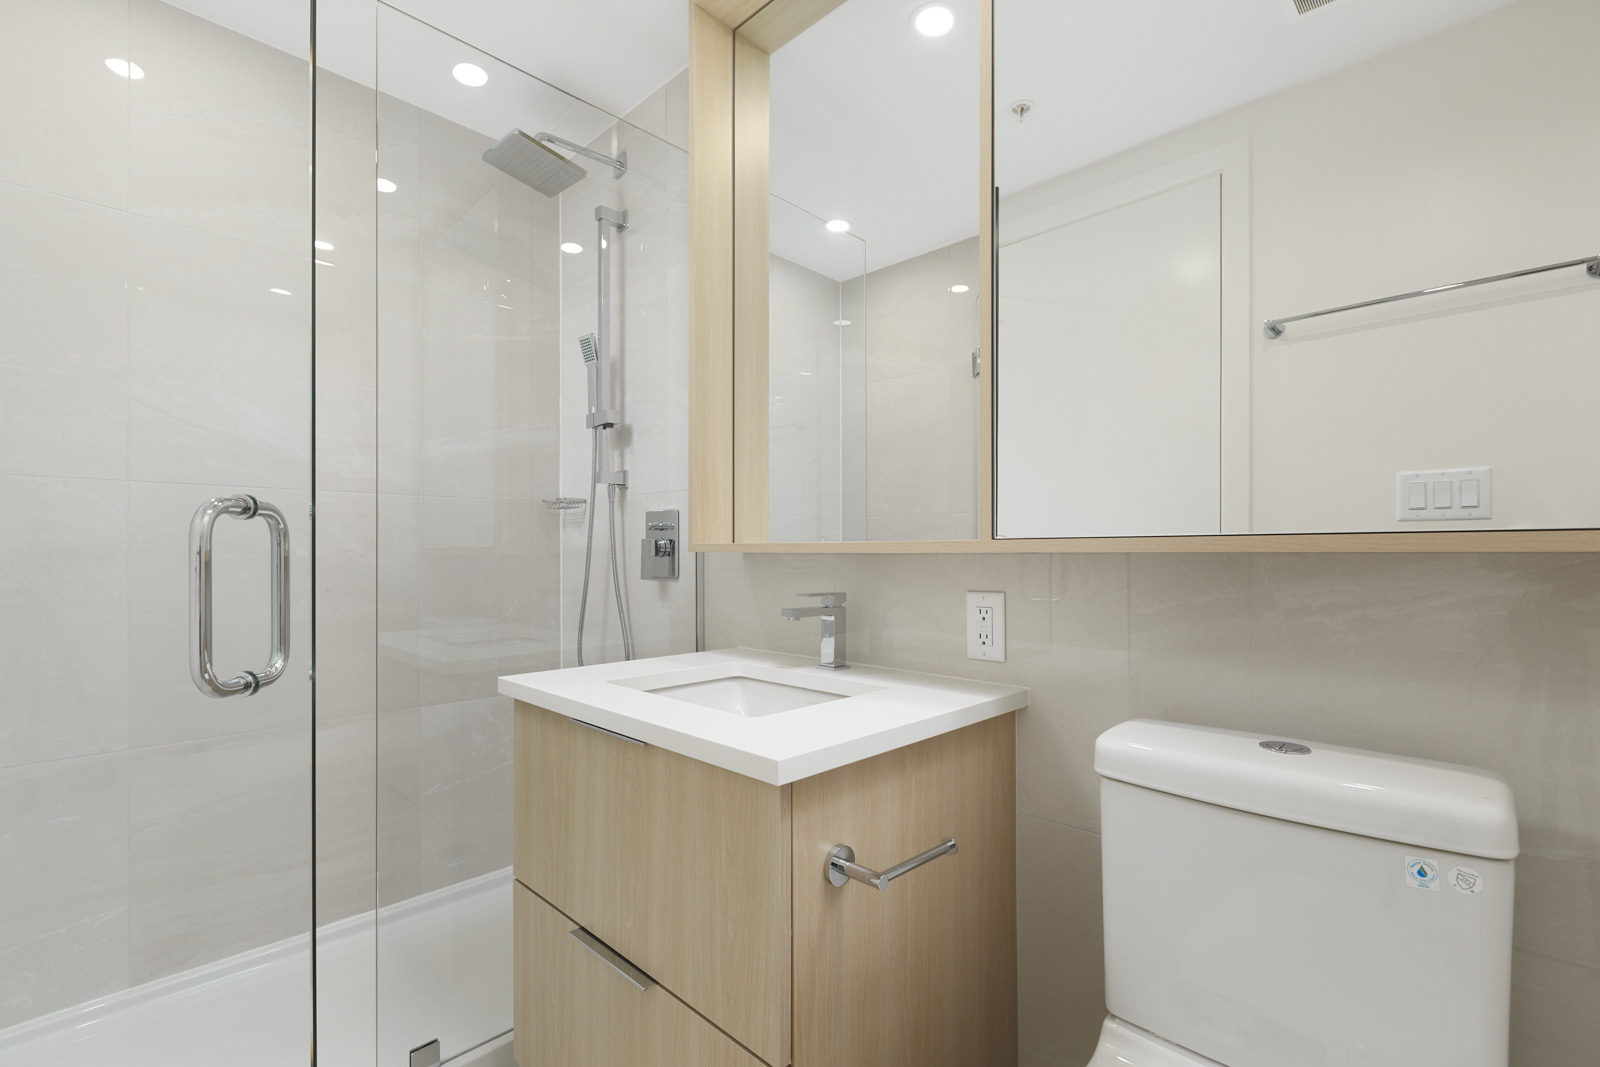 Bathroom with white walls and mirror